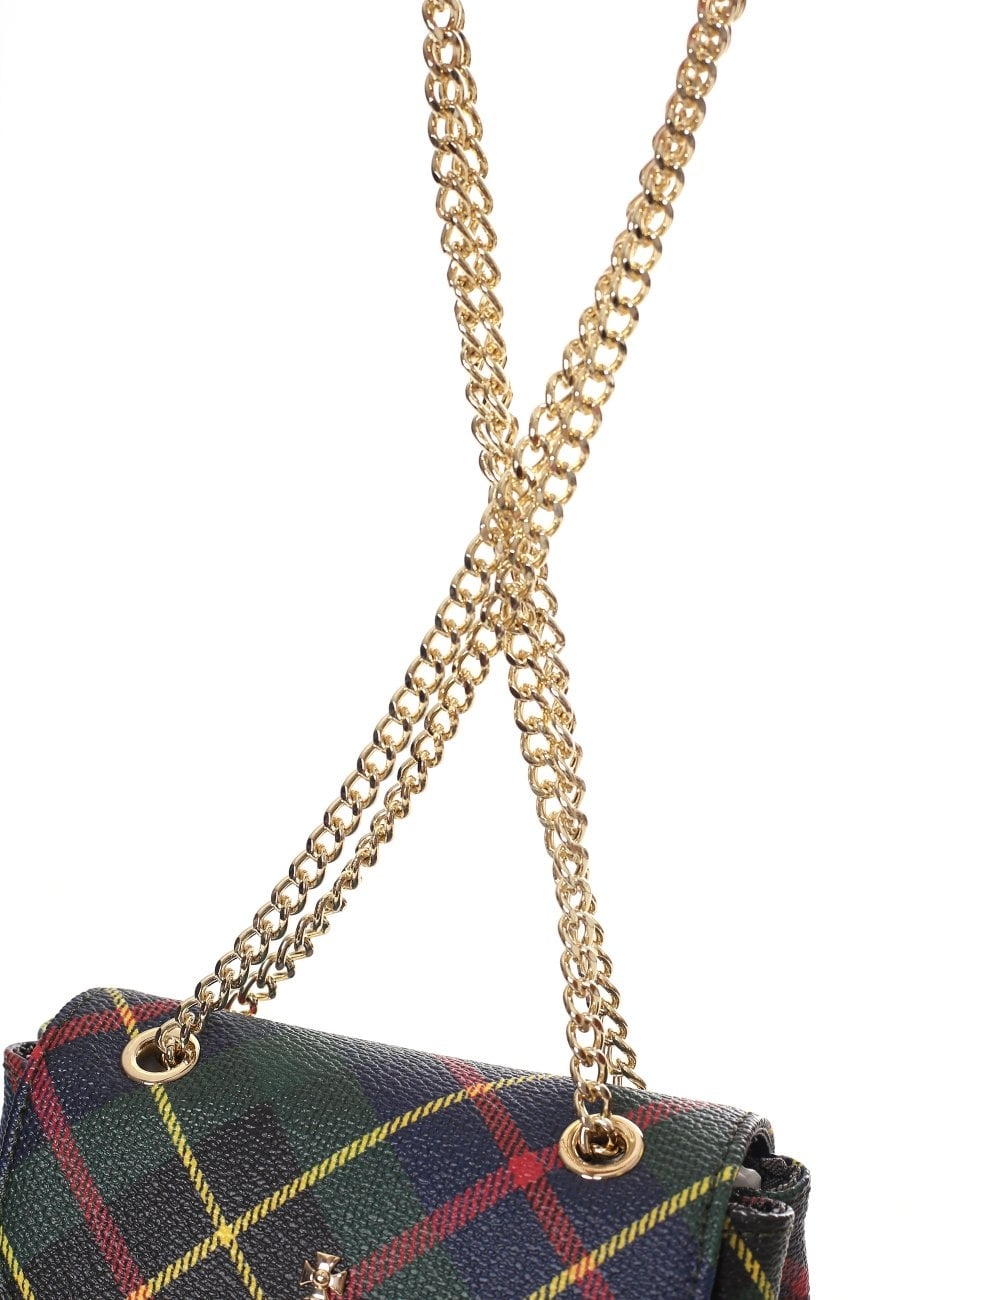 ac16dc7cc0f Vivienne Westwood Women's Derby Small Purse With Chain